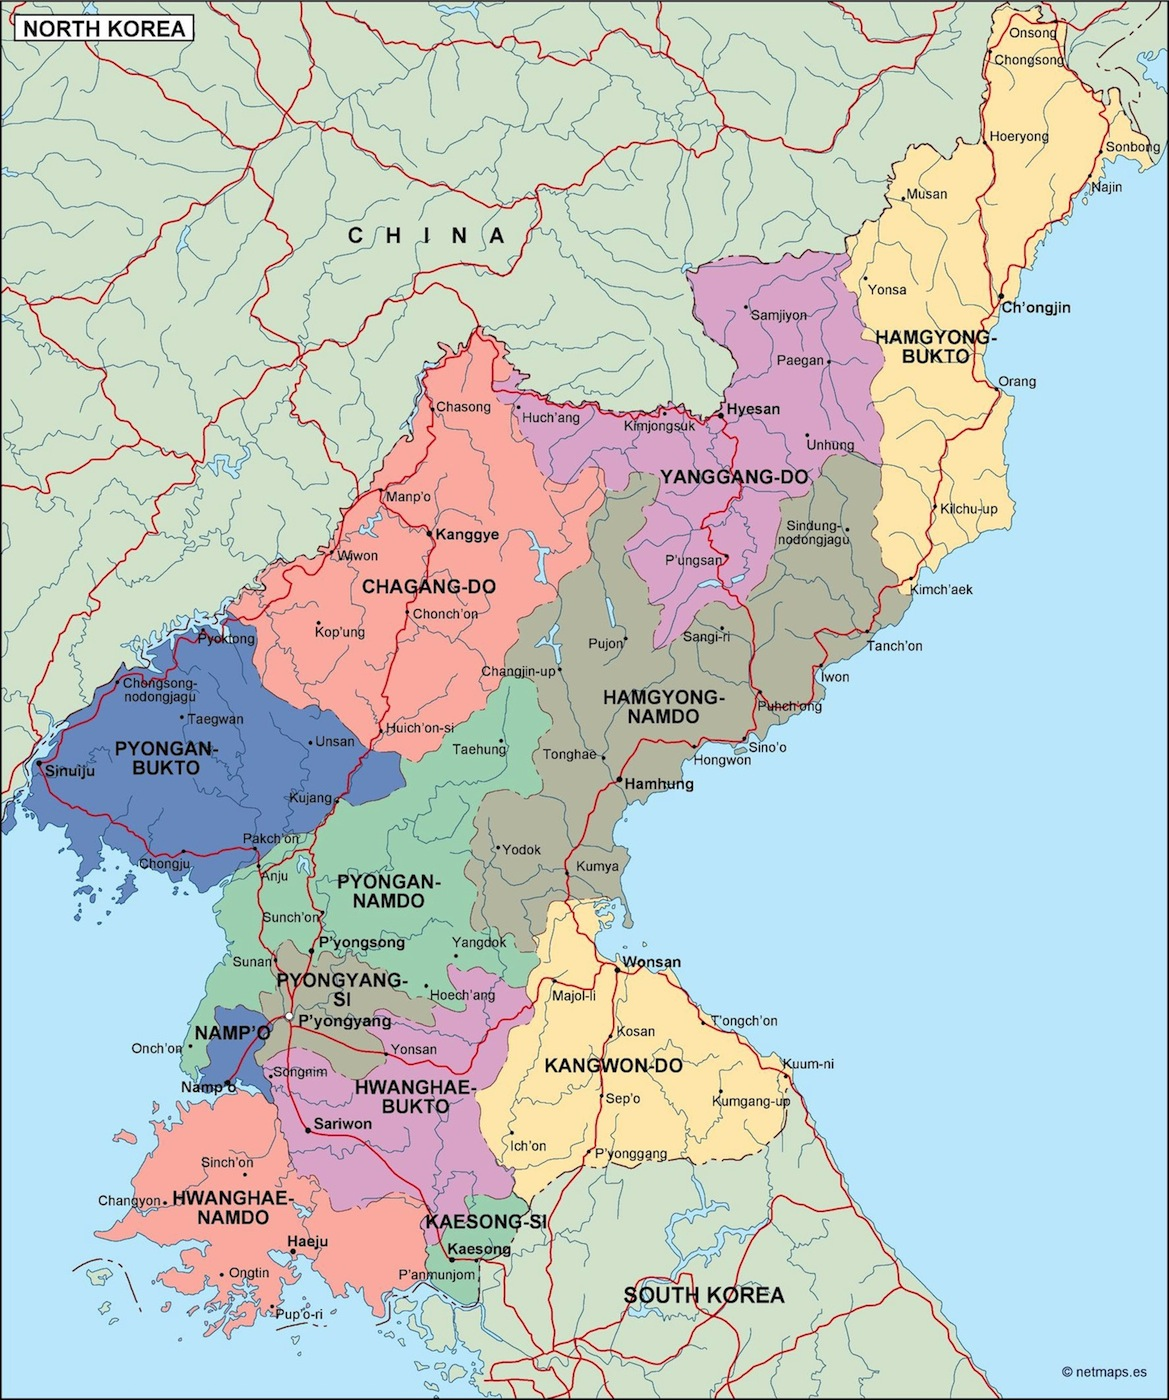 north korea political map Eps Illustrator Map Our cartographers